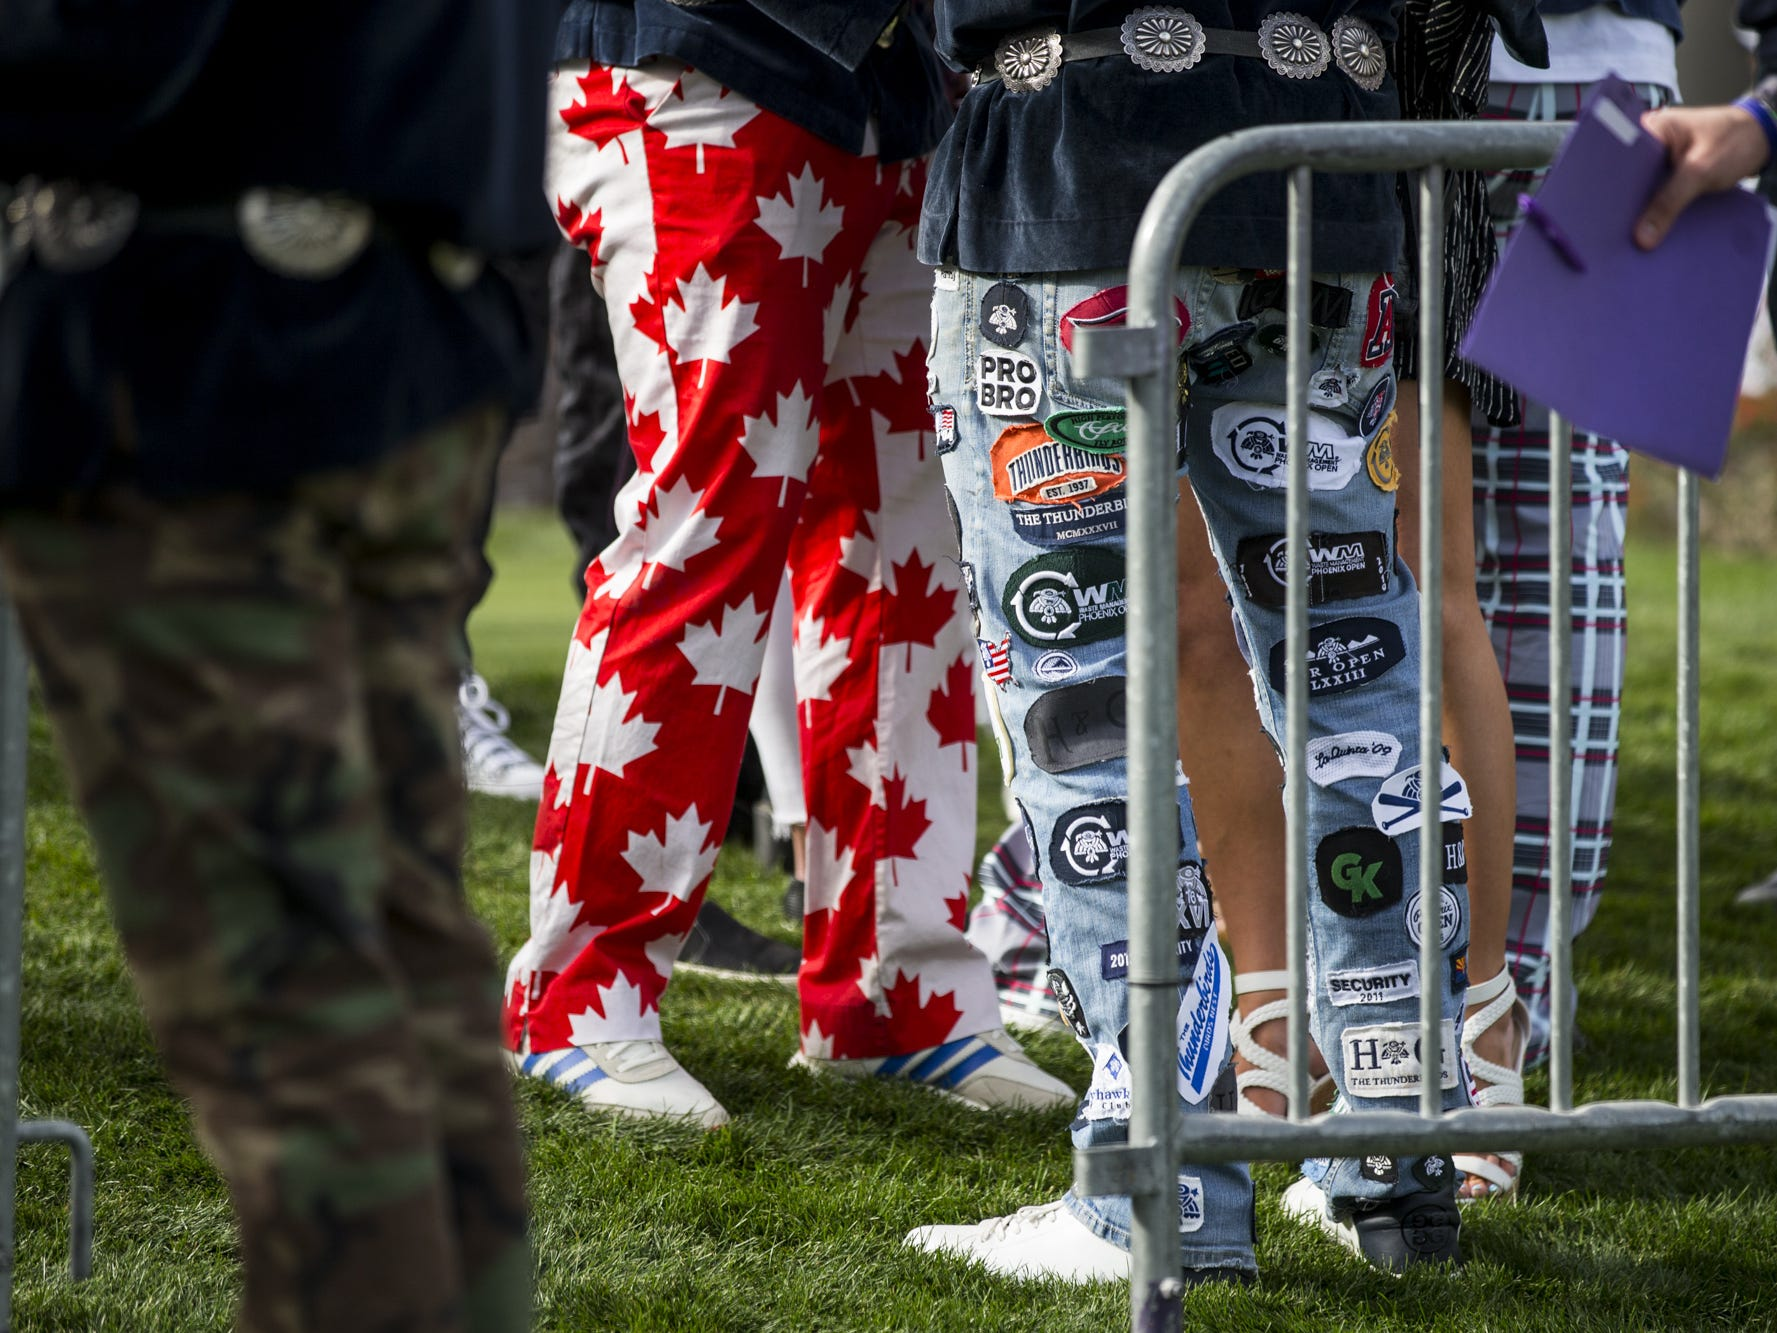 Fans wearing decorative pants stand near the tee at the 16th hole during the Annexus Pro-Am on Wednesday, Jan. 30, 2019, at TPC Scottsdale in Scottsdale, Ariz.